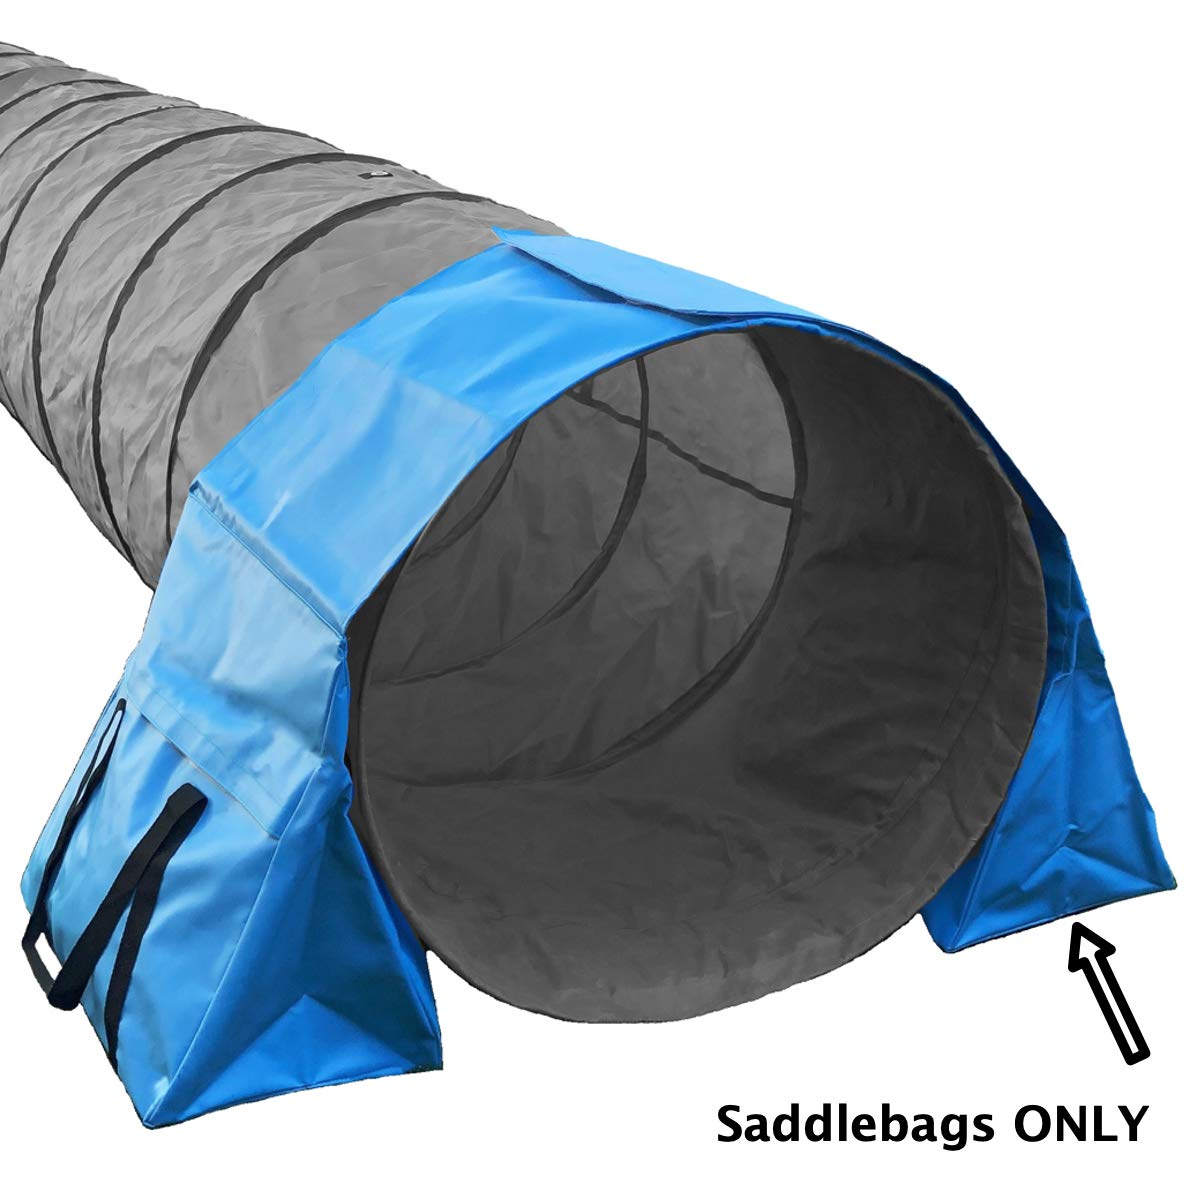 Rise8 Studios Non-Constricting Saddlebags for Stabilizing Dog Agility Tunnel Equipment Indoor or Outdoor, Blue Color (1 Pack) by Rise8